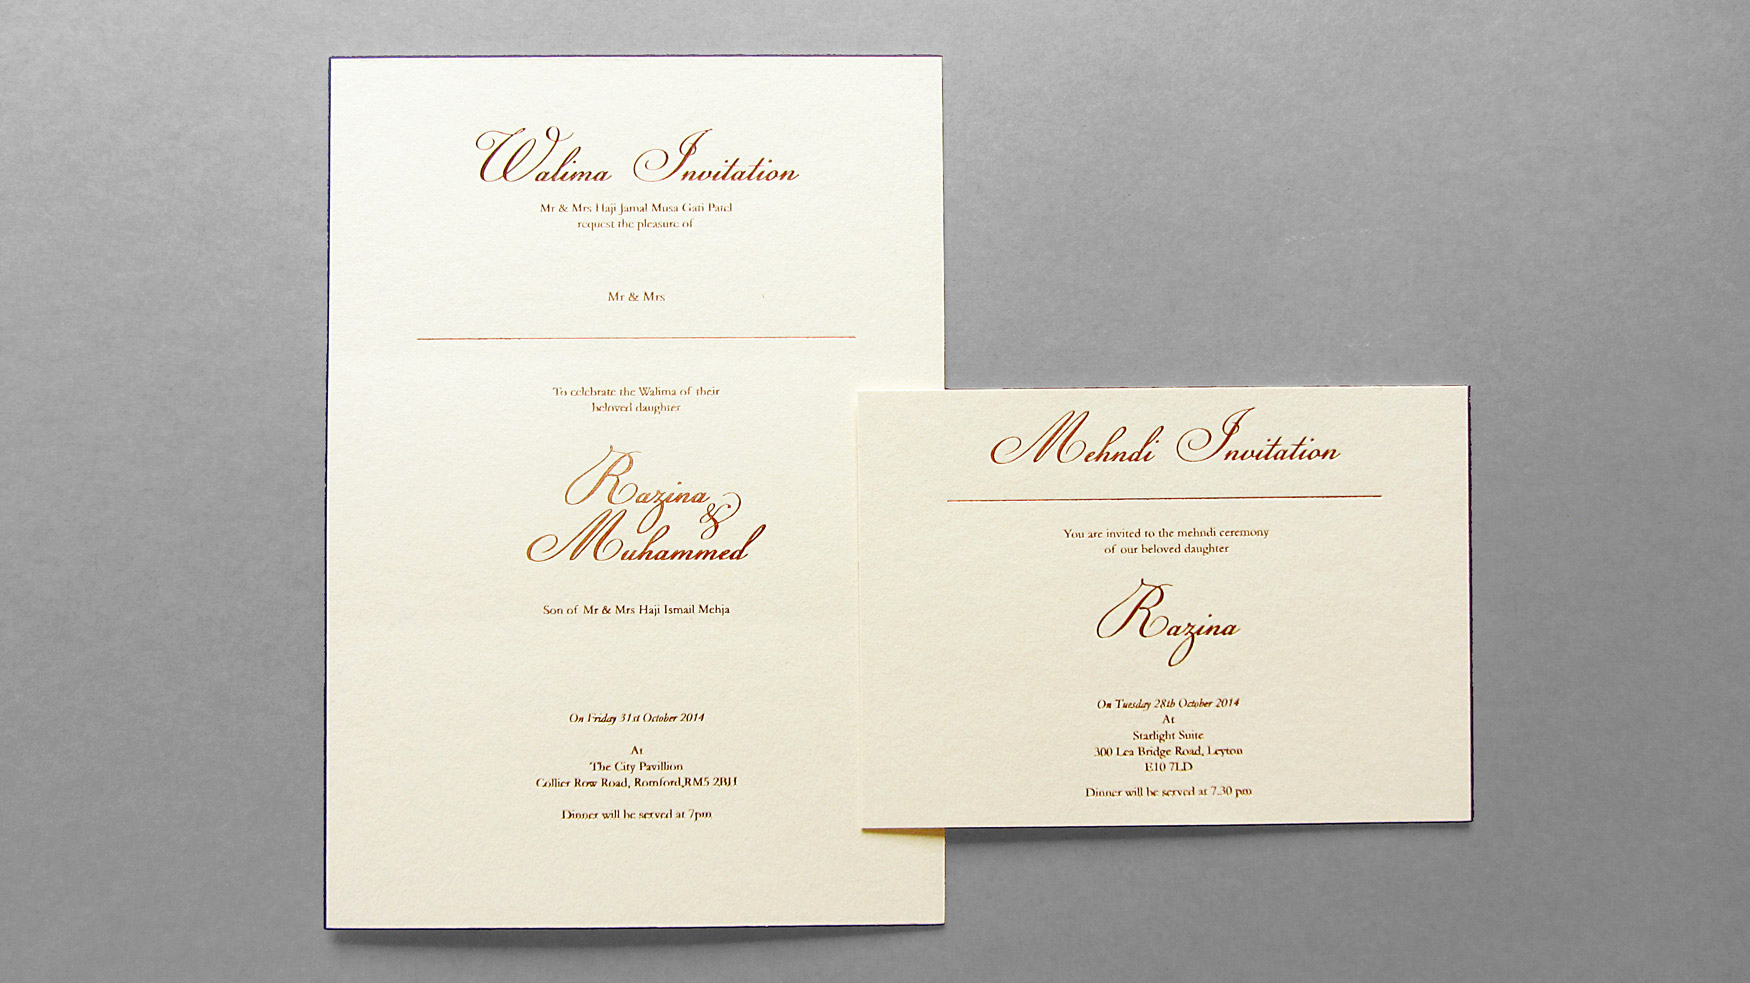 Walima Invitation Cards Wordings Elegant Razina & Muhammed Walima & Mehndi Invitations Freestyle